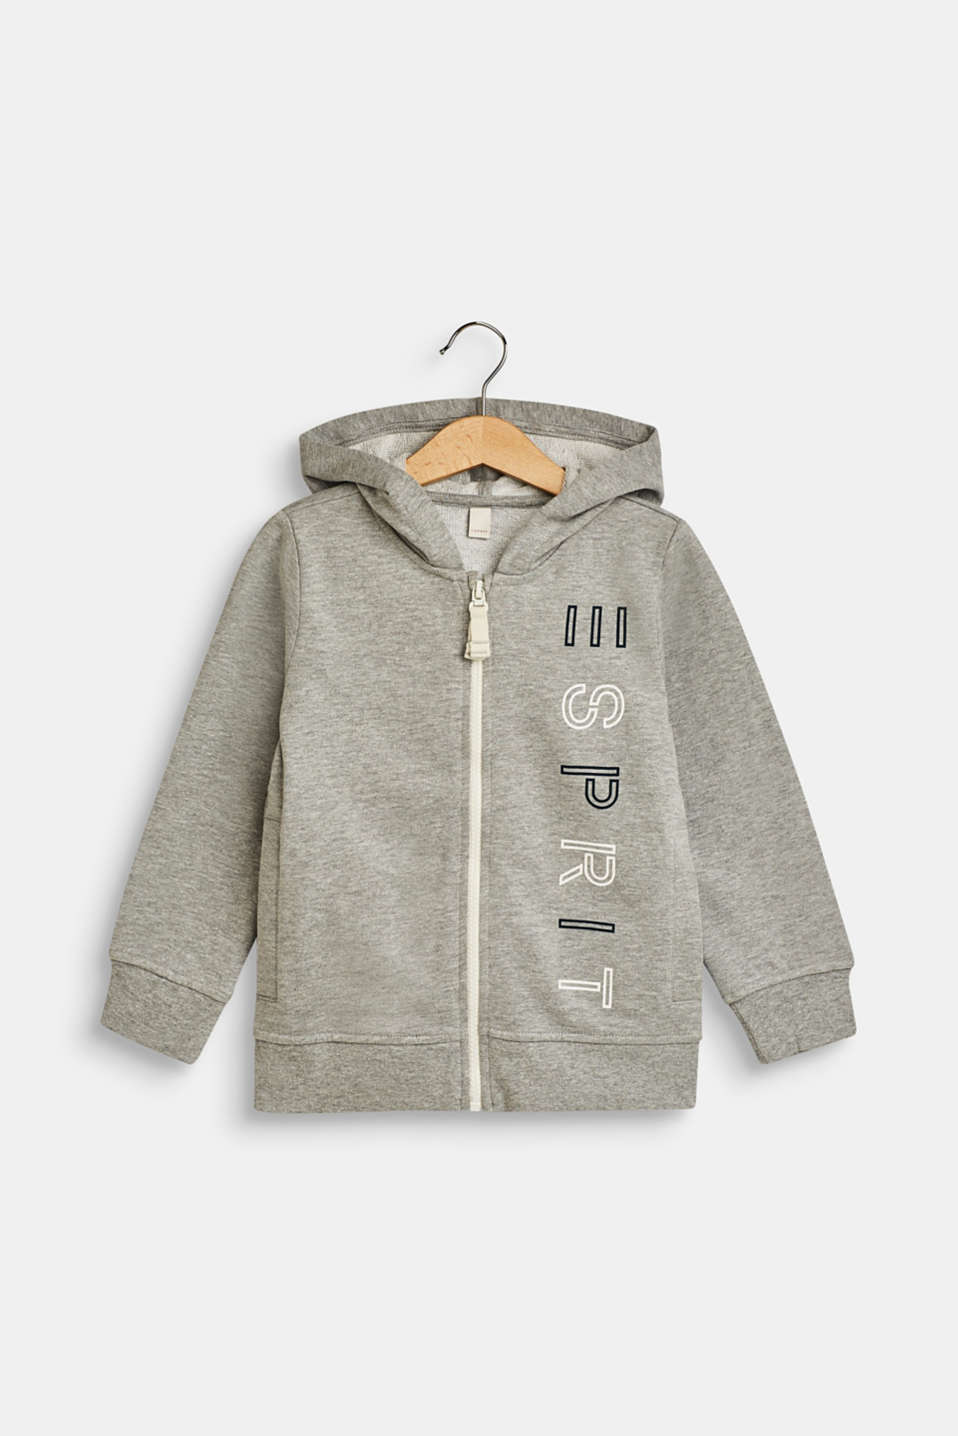 Esprit - Sweatshirt fabric cardigan with a logo print